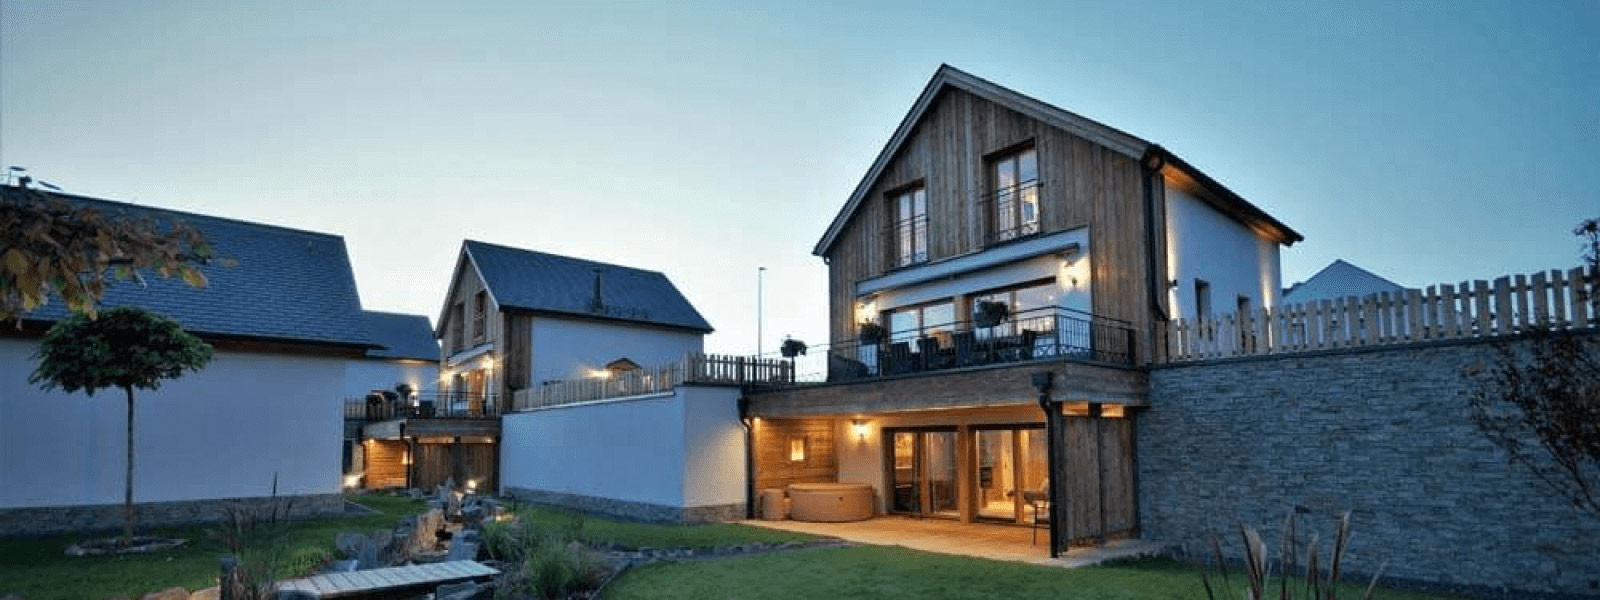 Chalets Petry - Chalet Moselle